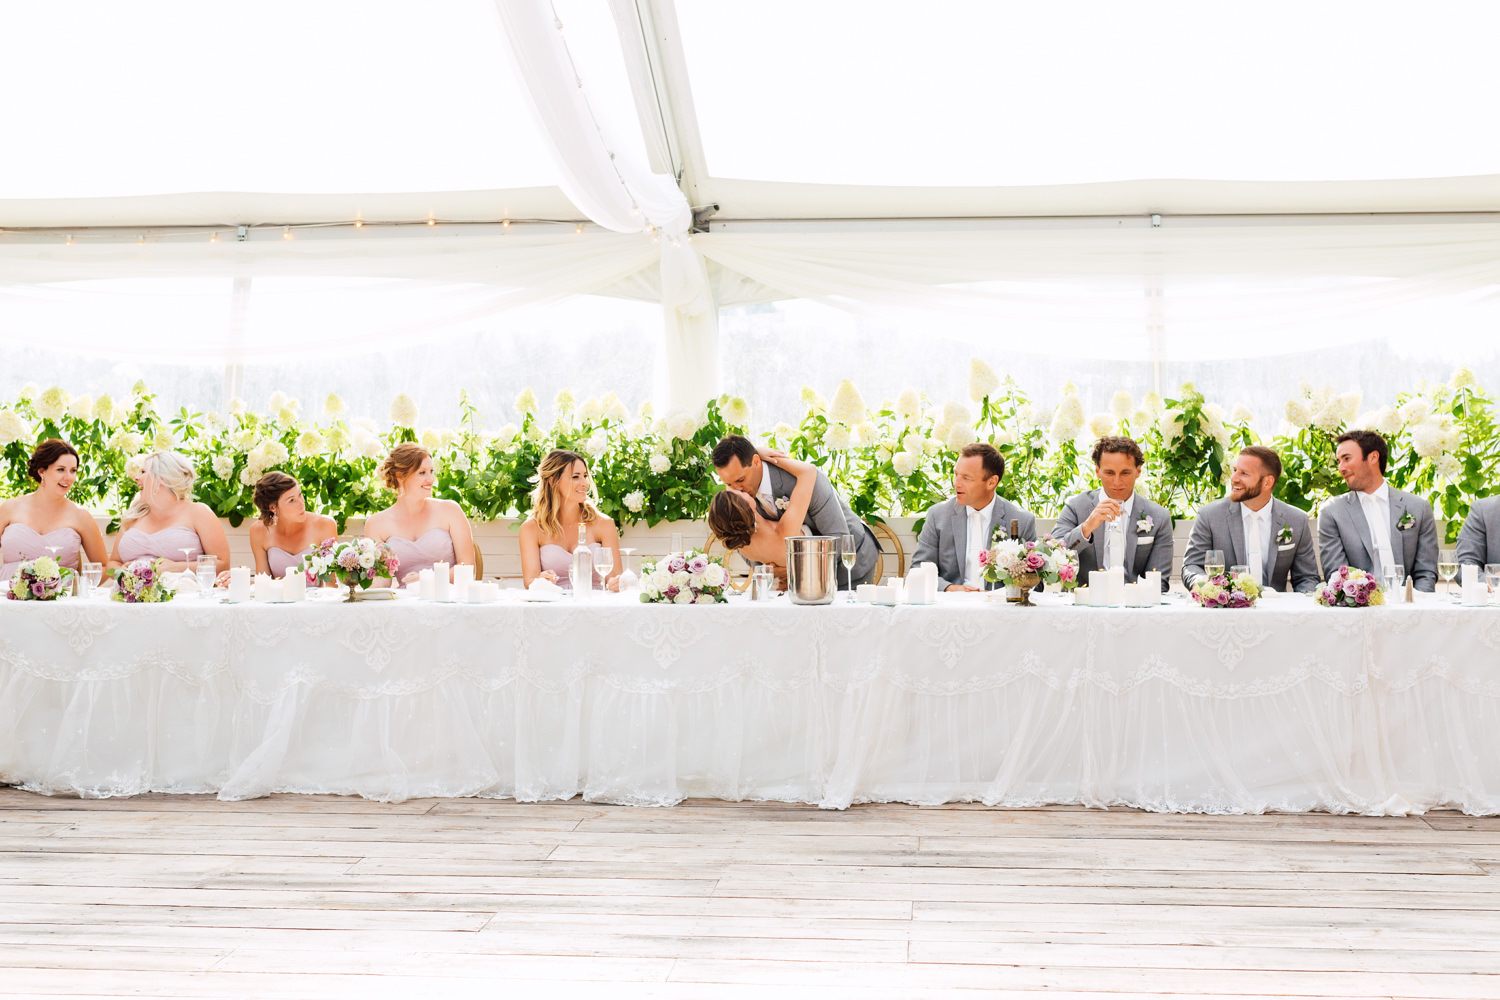 long head table